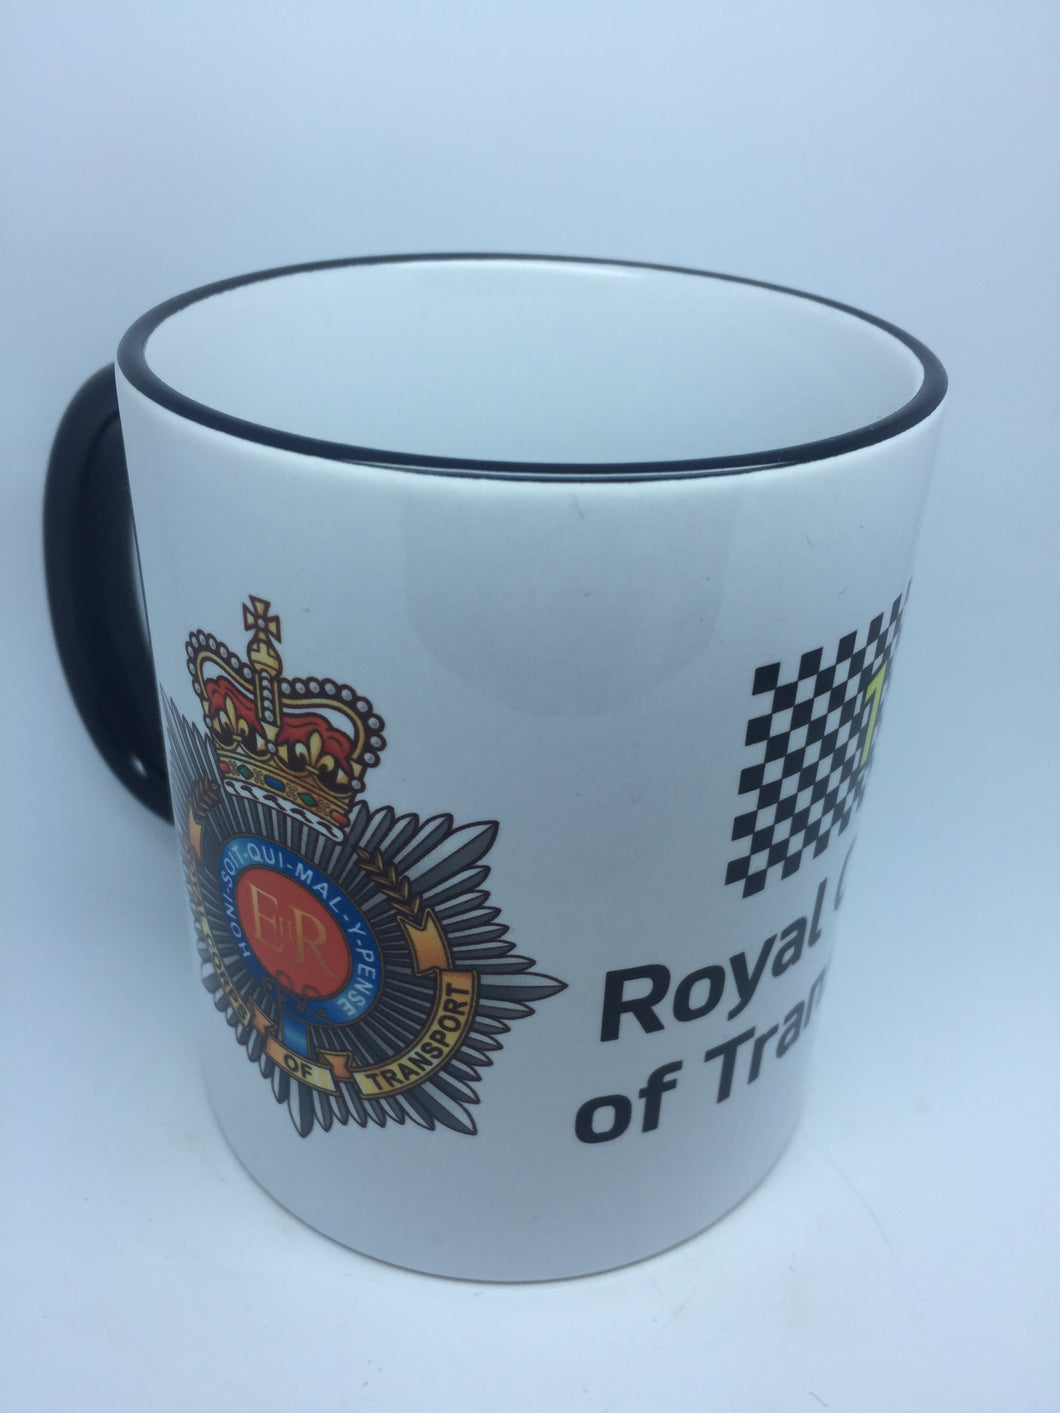 1 Squadron Royal Corps of Transport Coffee/Travel Mug